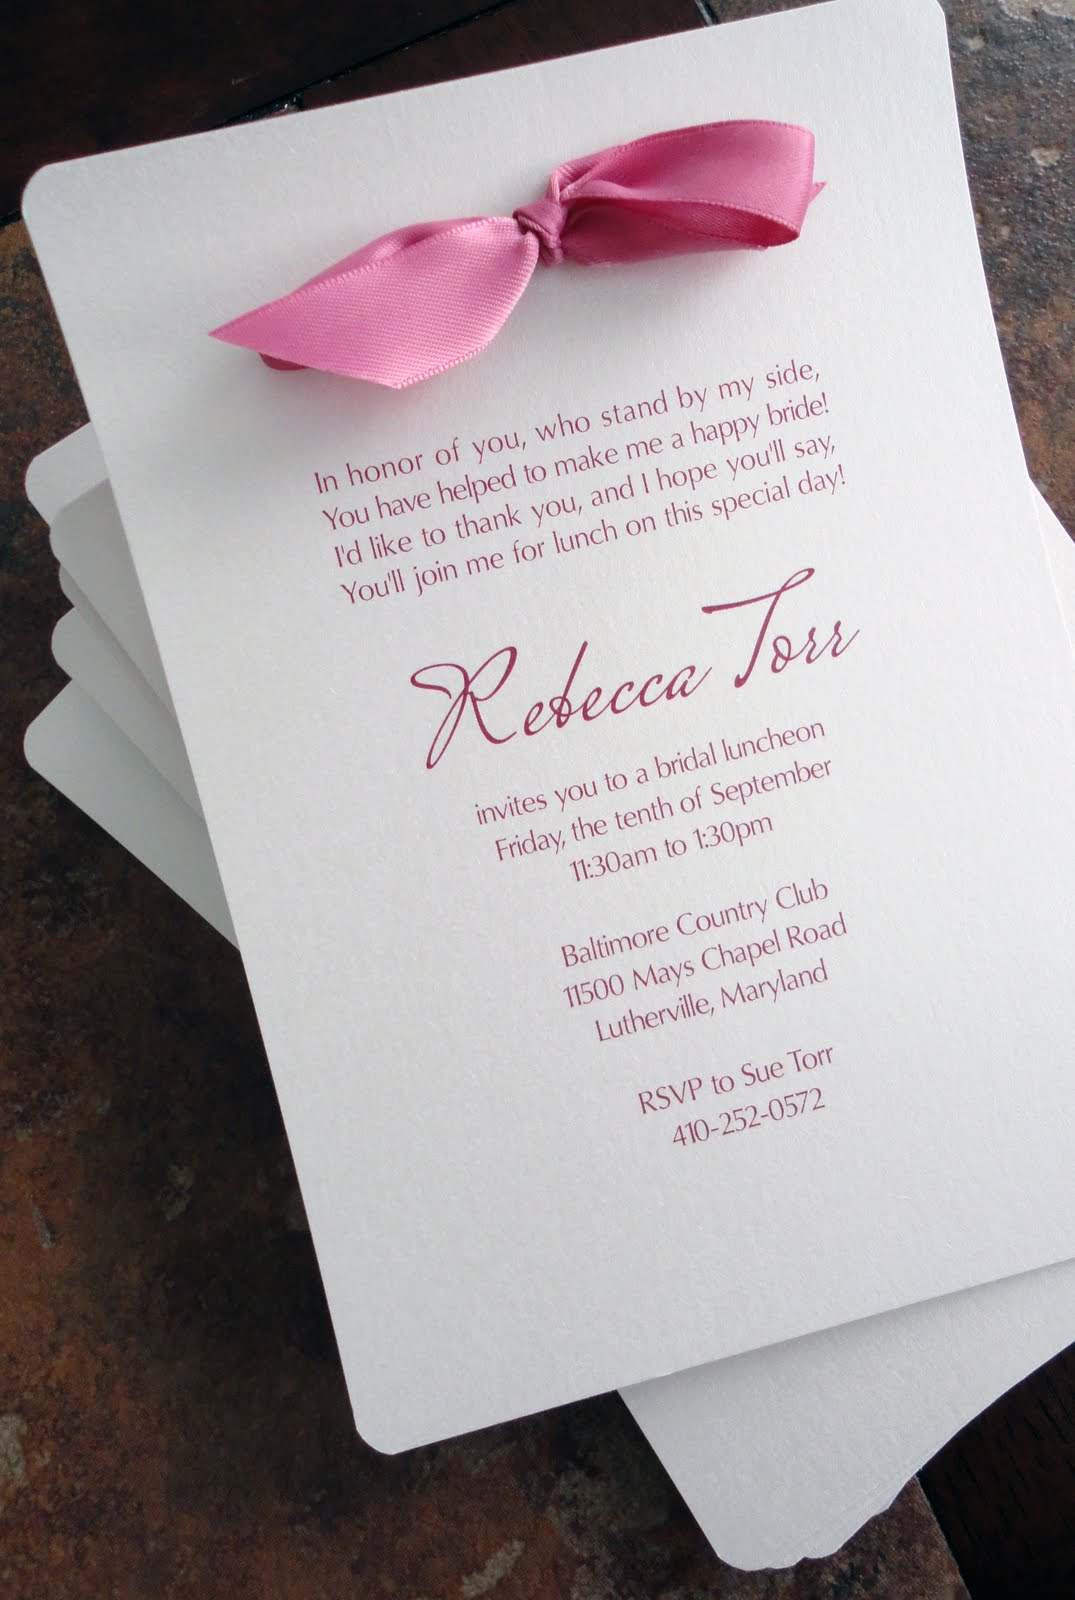 How Long Before Bridal Shower To Send Invitations Image collections ...